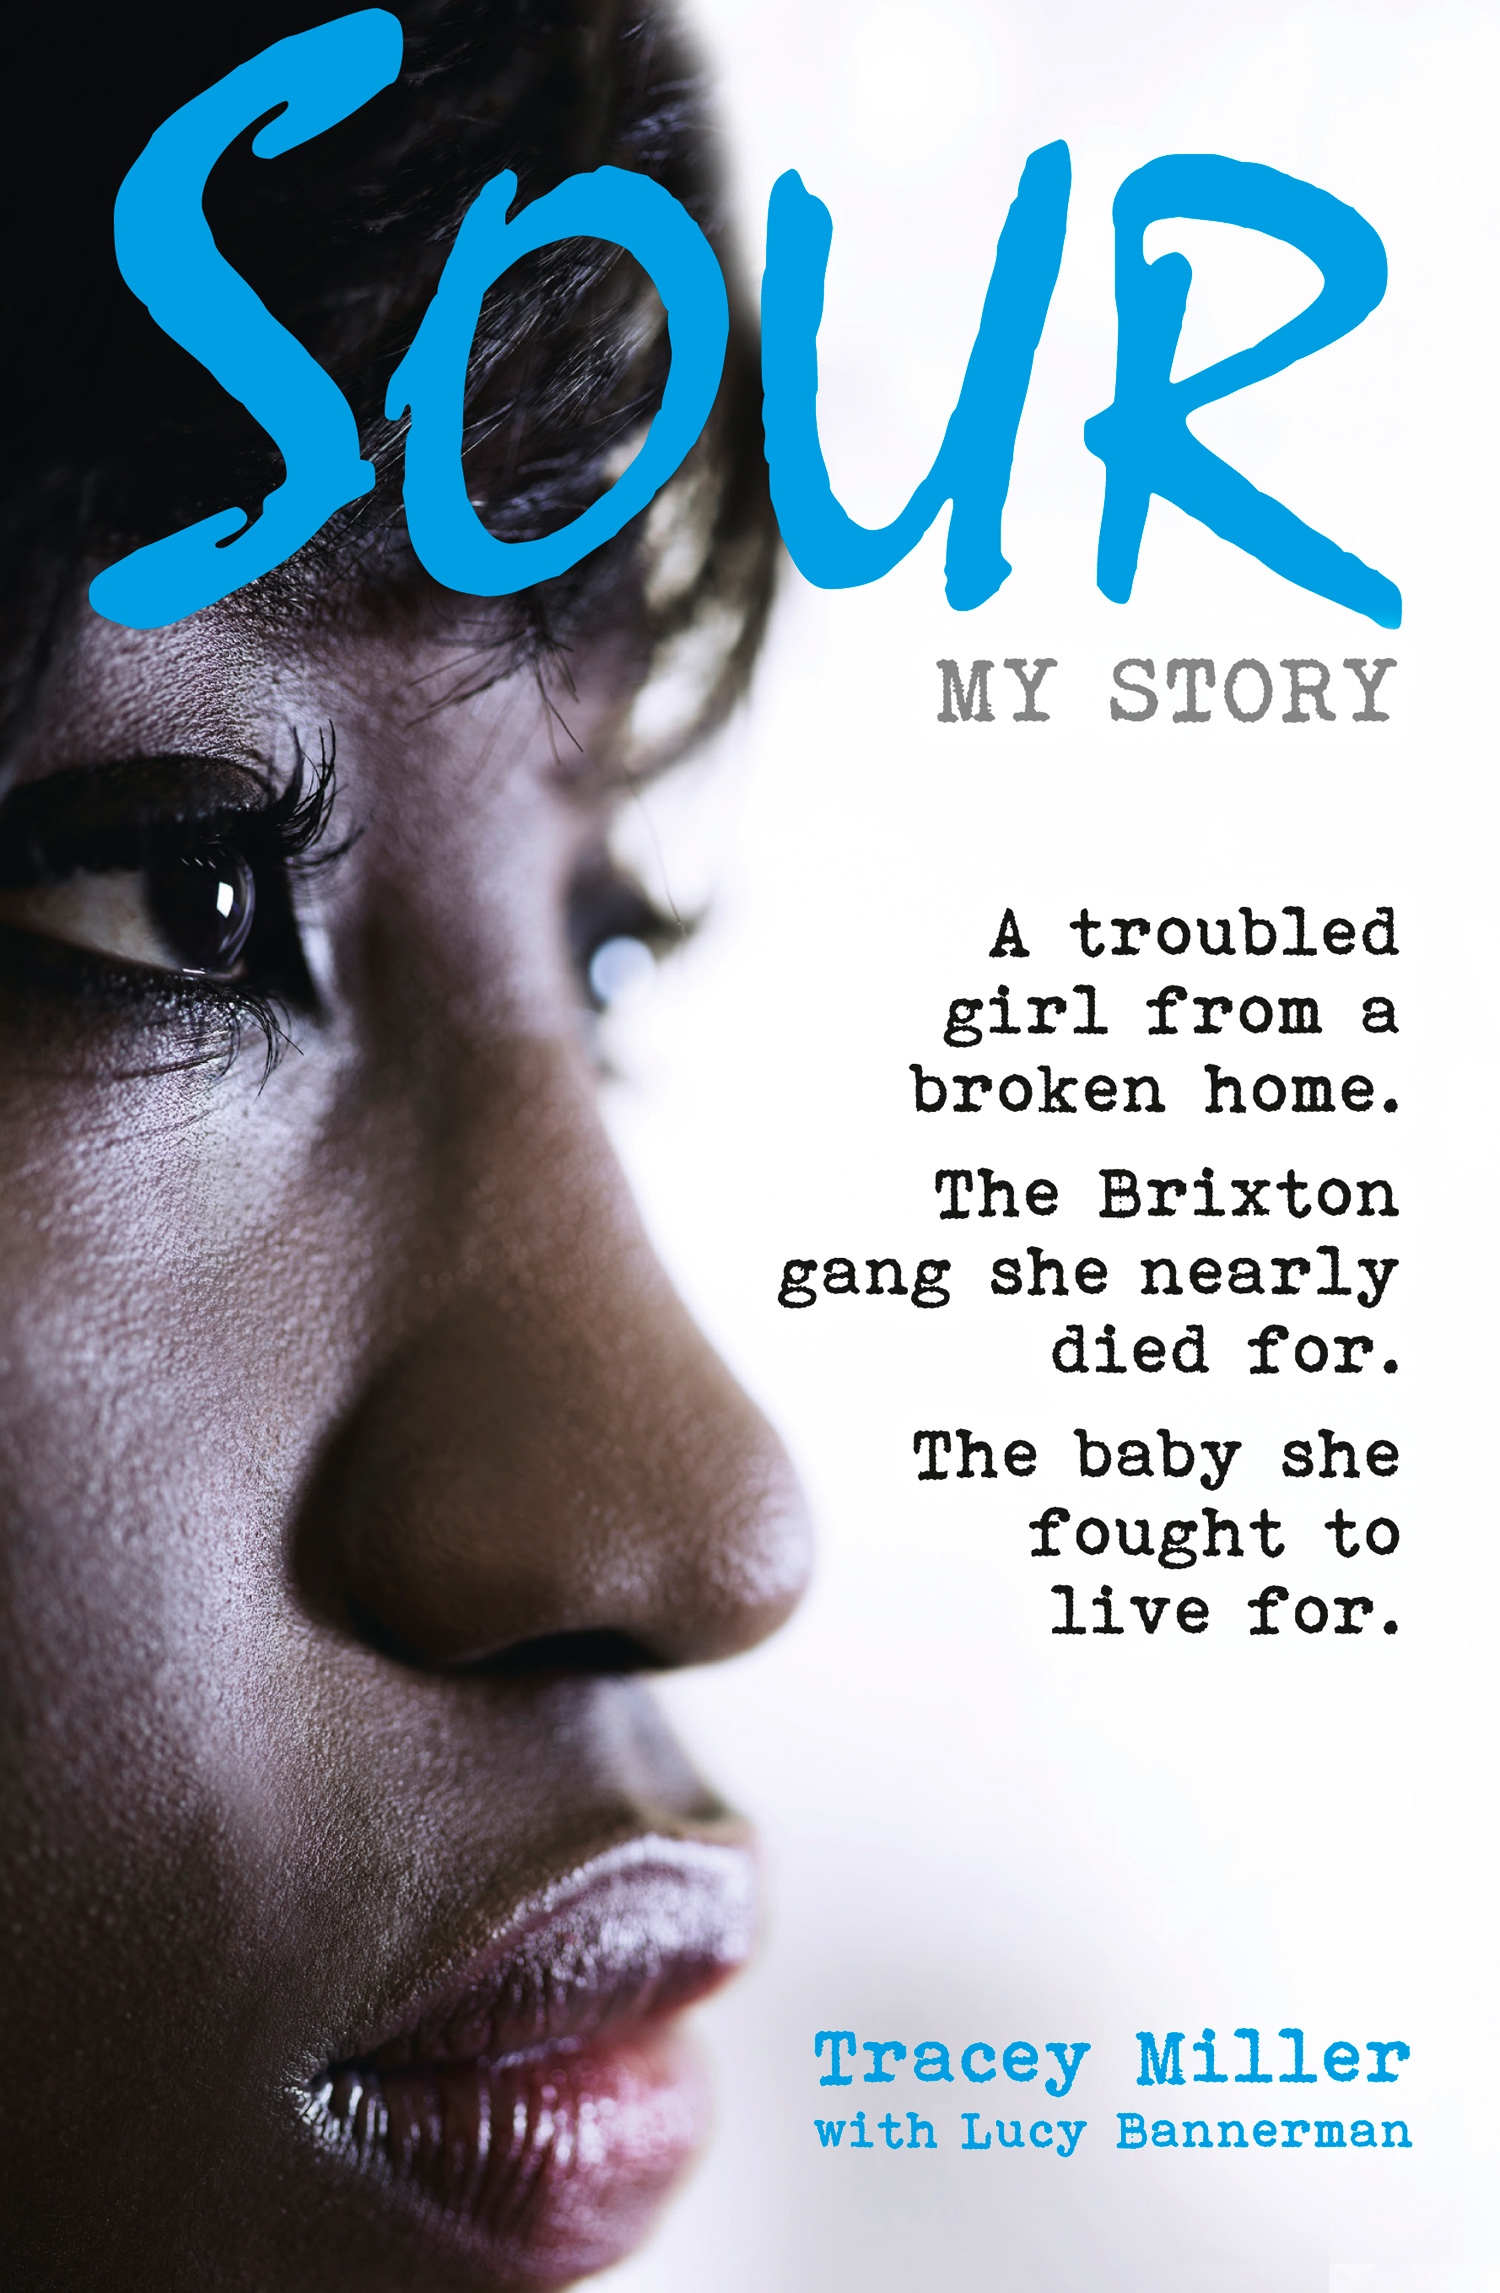 Sour: My Story: A troubled girl from a broken home. The Brixton gang she nearly died for. The baby she fought to live for.